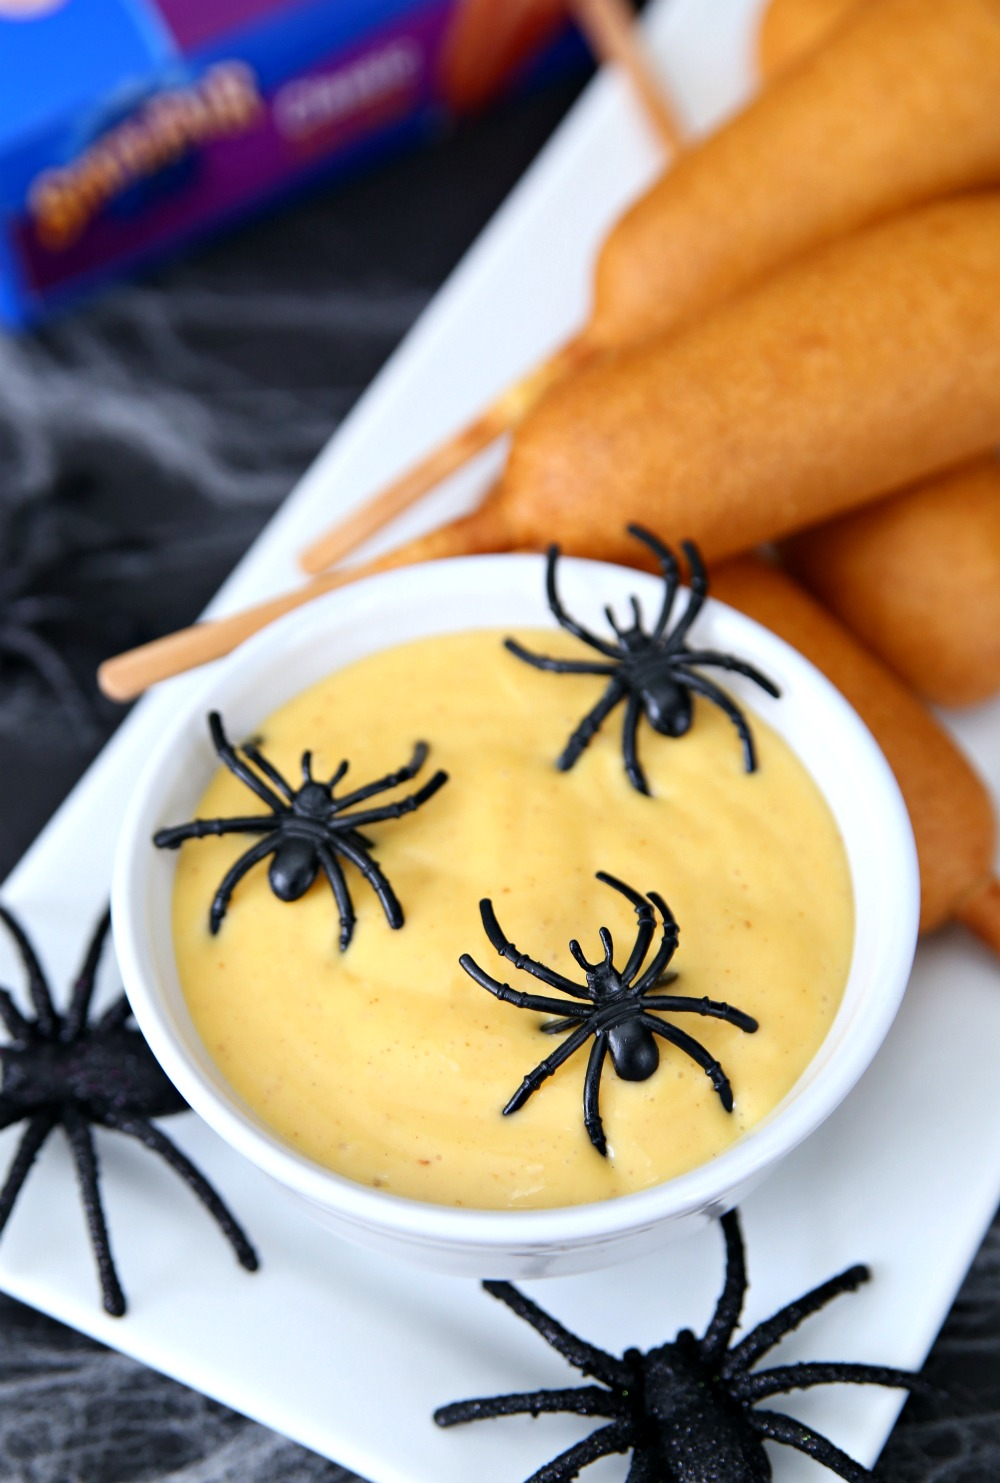 Creepy Honey Mustard Dipping Sauce with Corn Dogs - A creepy and fun Halloween appetizer idea!